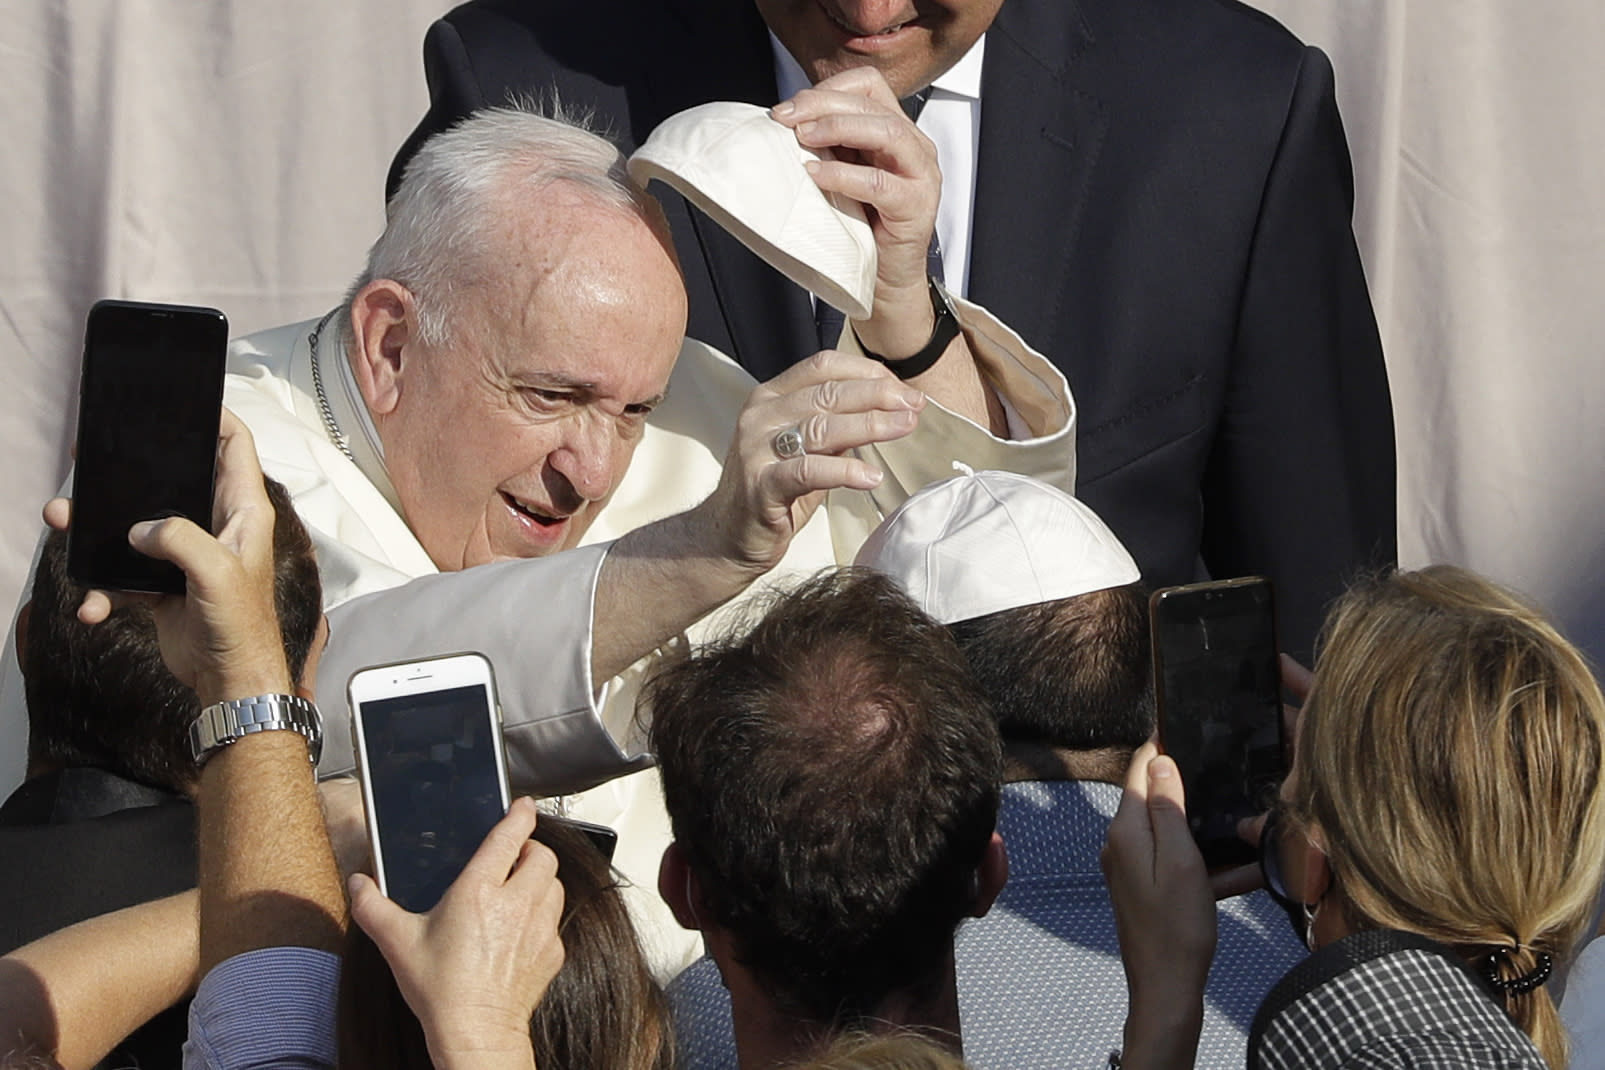 Pope Francis exchanges a skull cap which was donated by faithful as he arrives in the St. Damaso courtyard on the occasion of his weekly general audience at the Vatican, Wednesday, Sept. 16, 2020. (AP Photo/Gregorio Borgia)